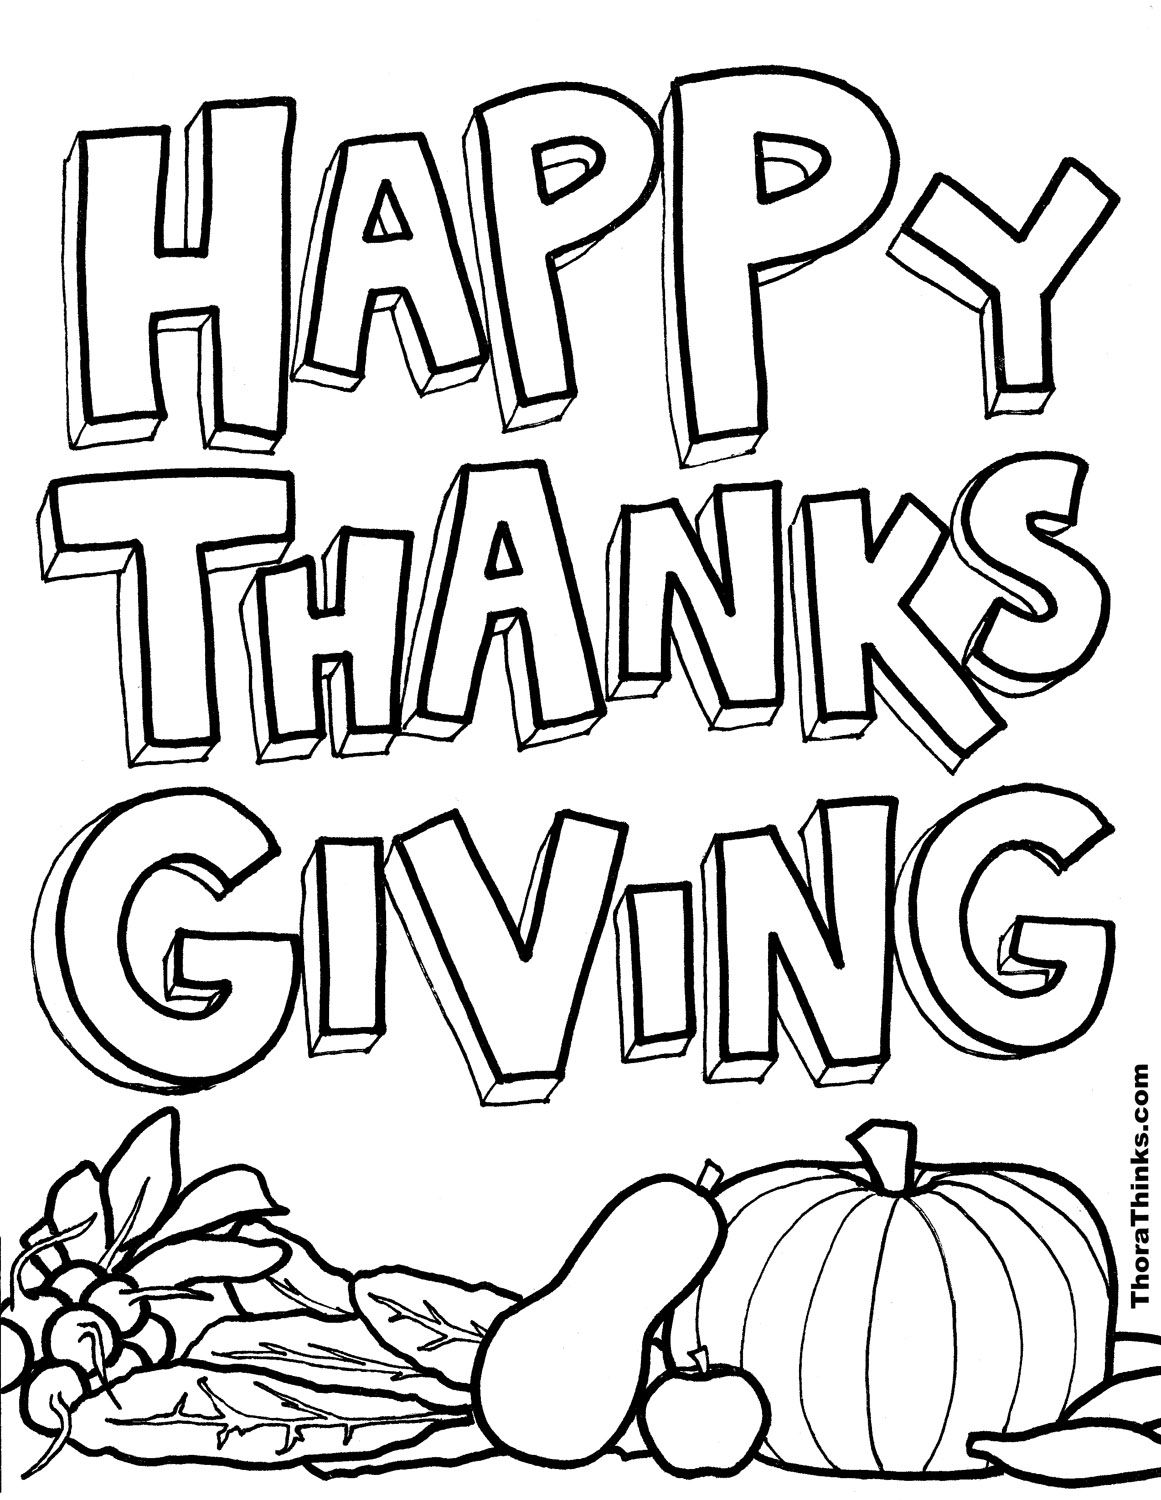 Thanksgiving Coloring Pages For Adults Coloring Home Thanksgiving Coloring Pages For Adults